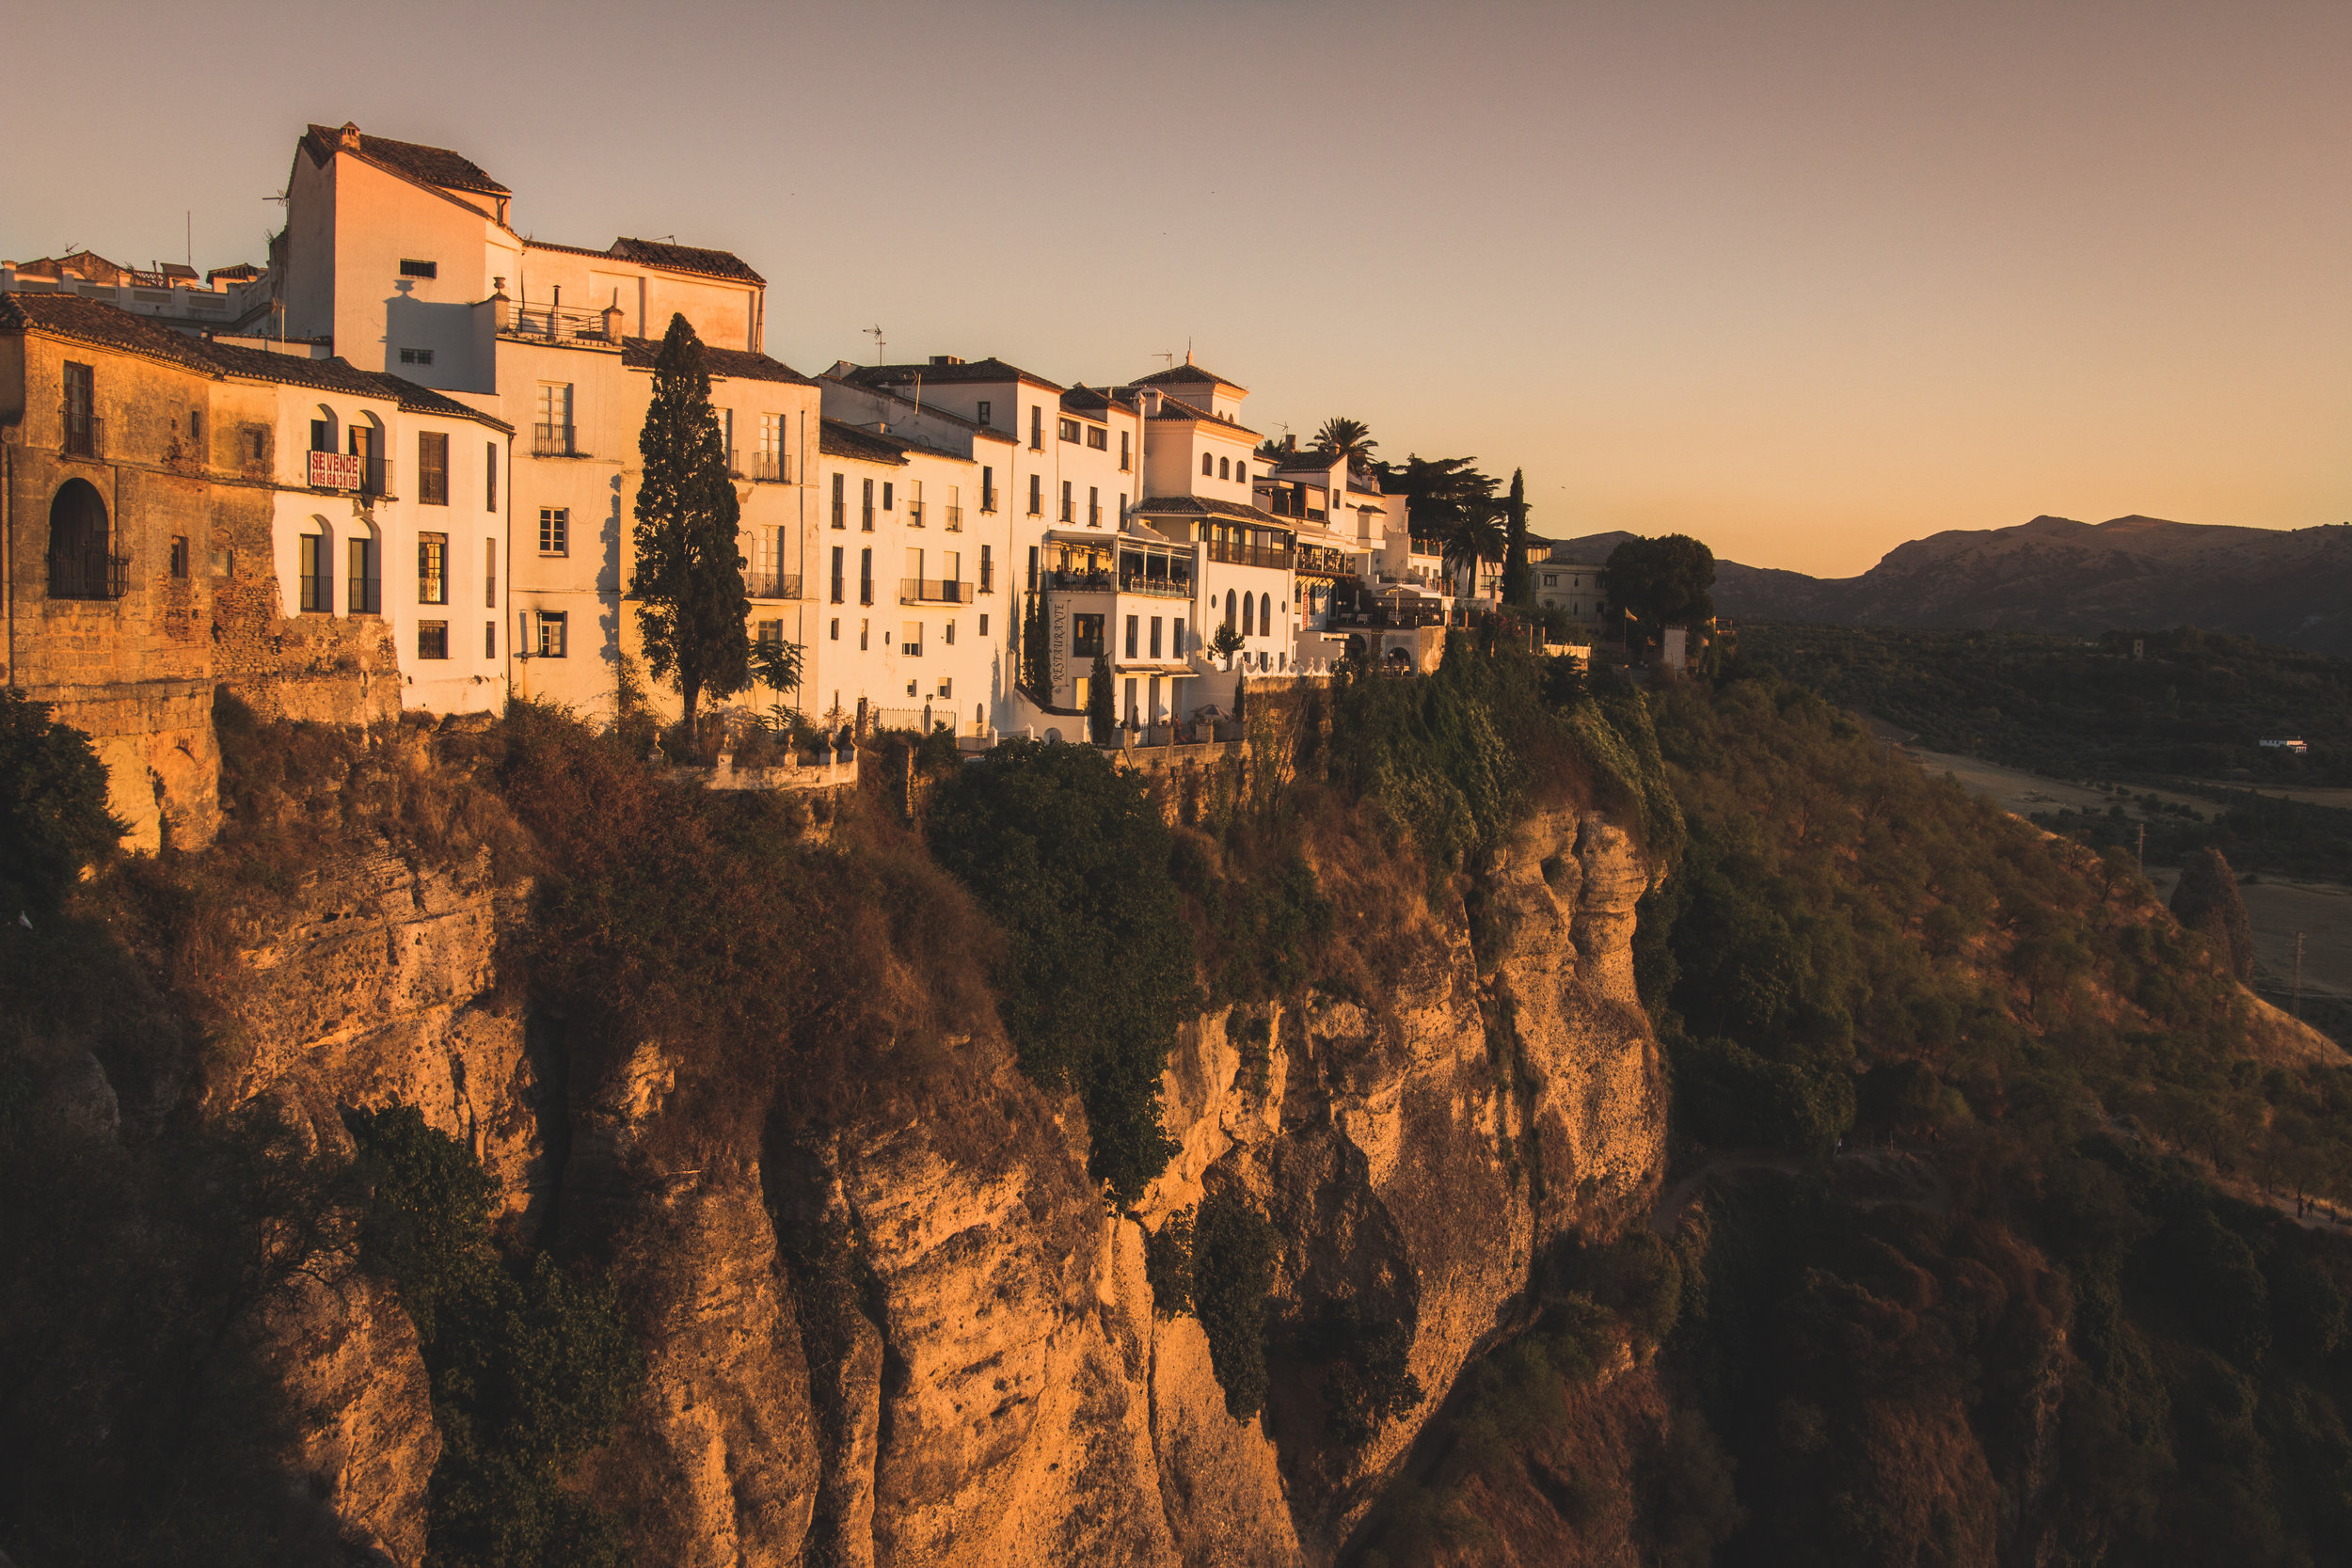 RONDA    A historic andalusian town located on a mountain. Click on the image for more.